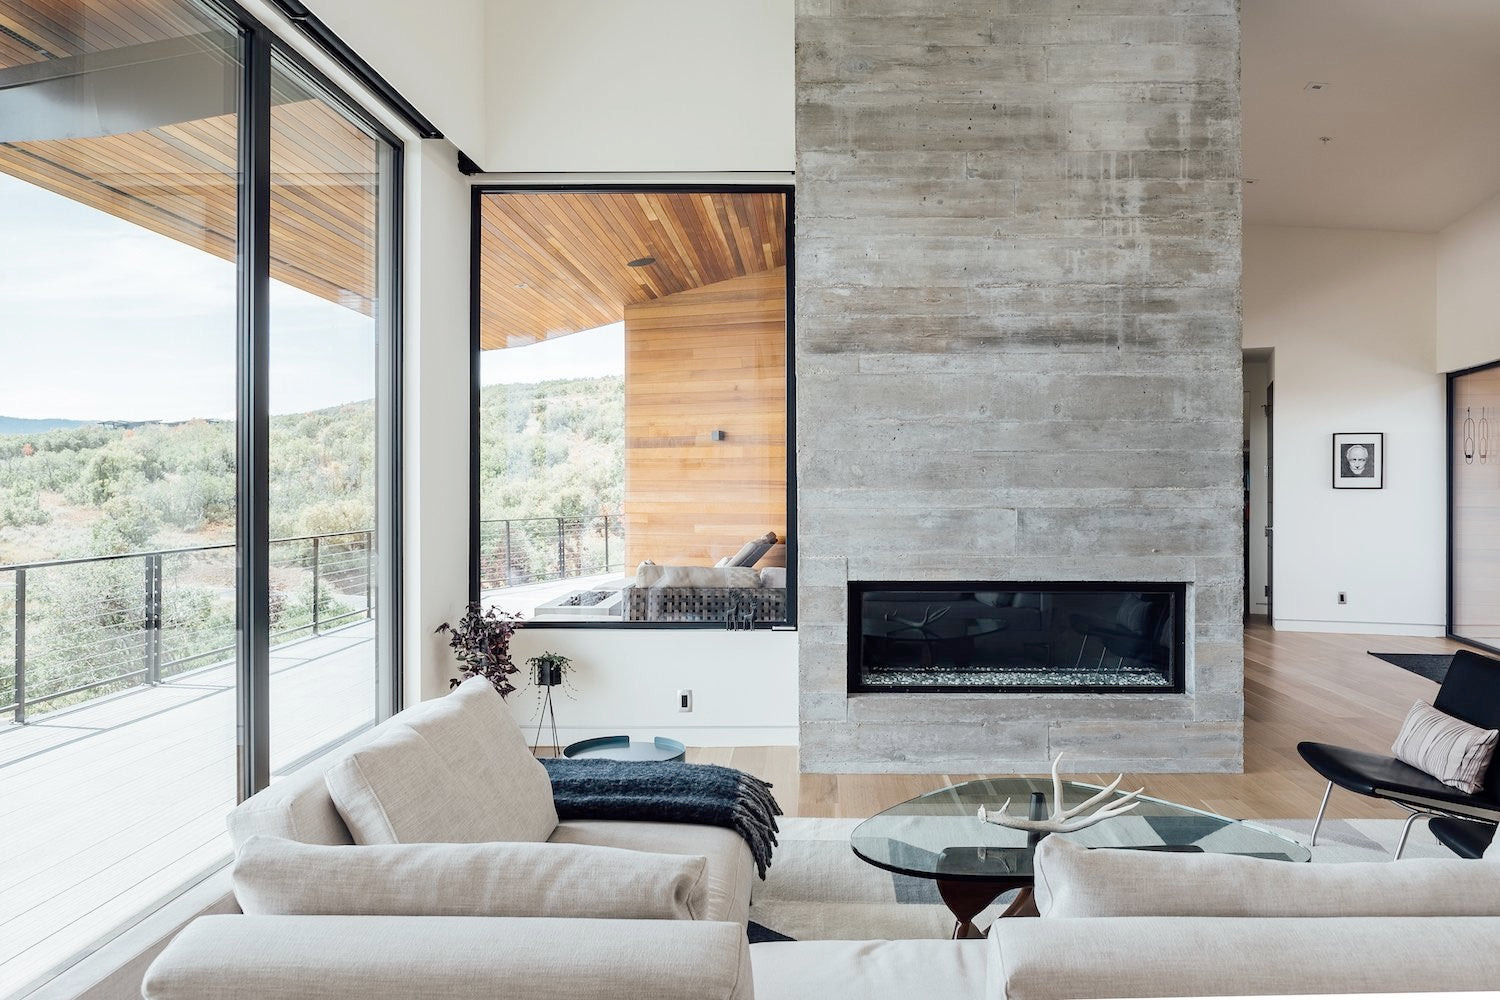 dwell modern home - park city utah